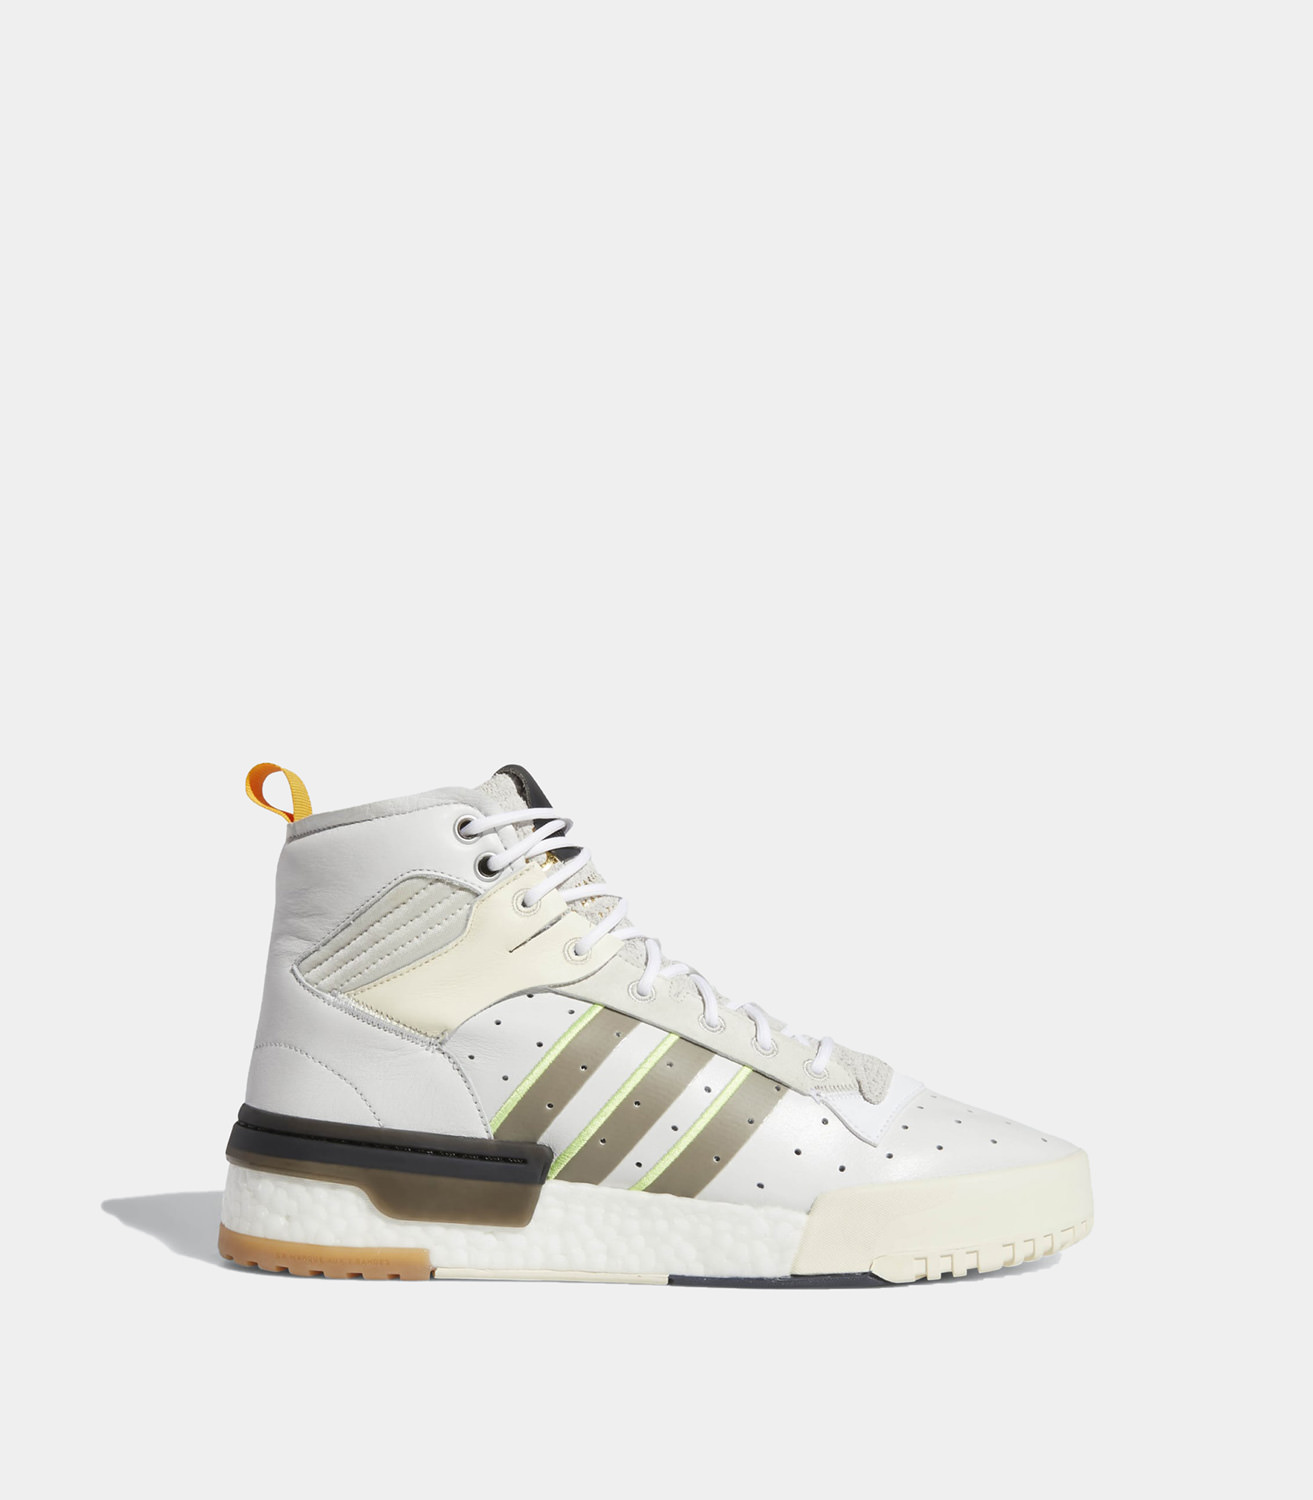 Bianco Rm Donna Adidas Colore Rivalry Play Originals Sneakers gwqY4